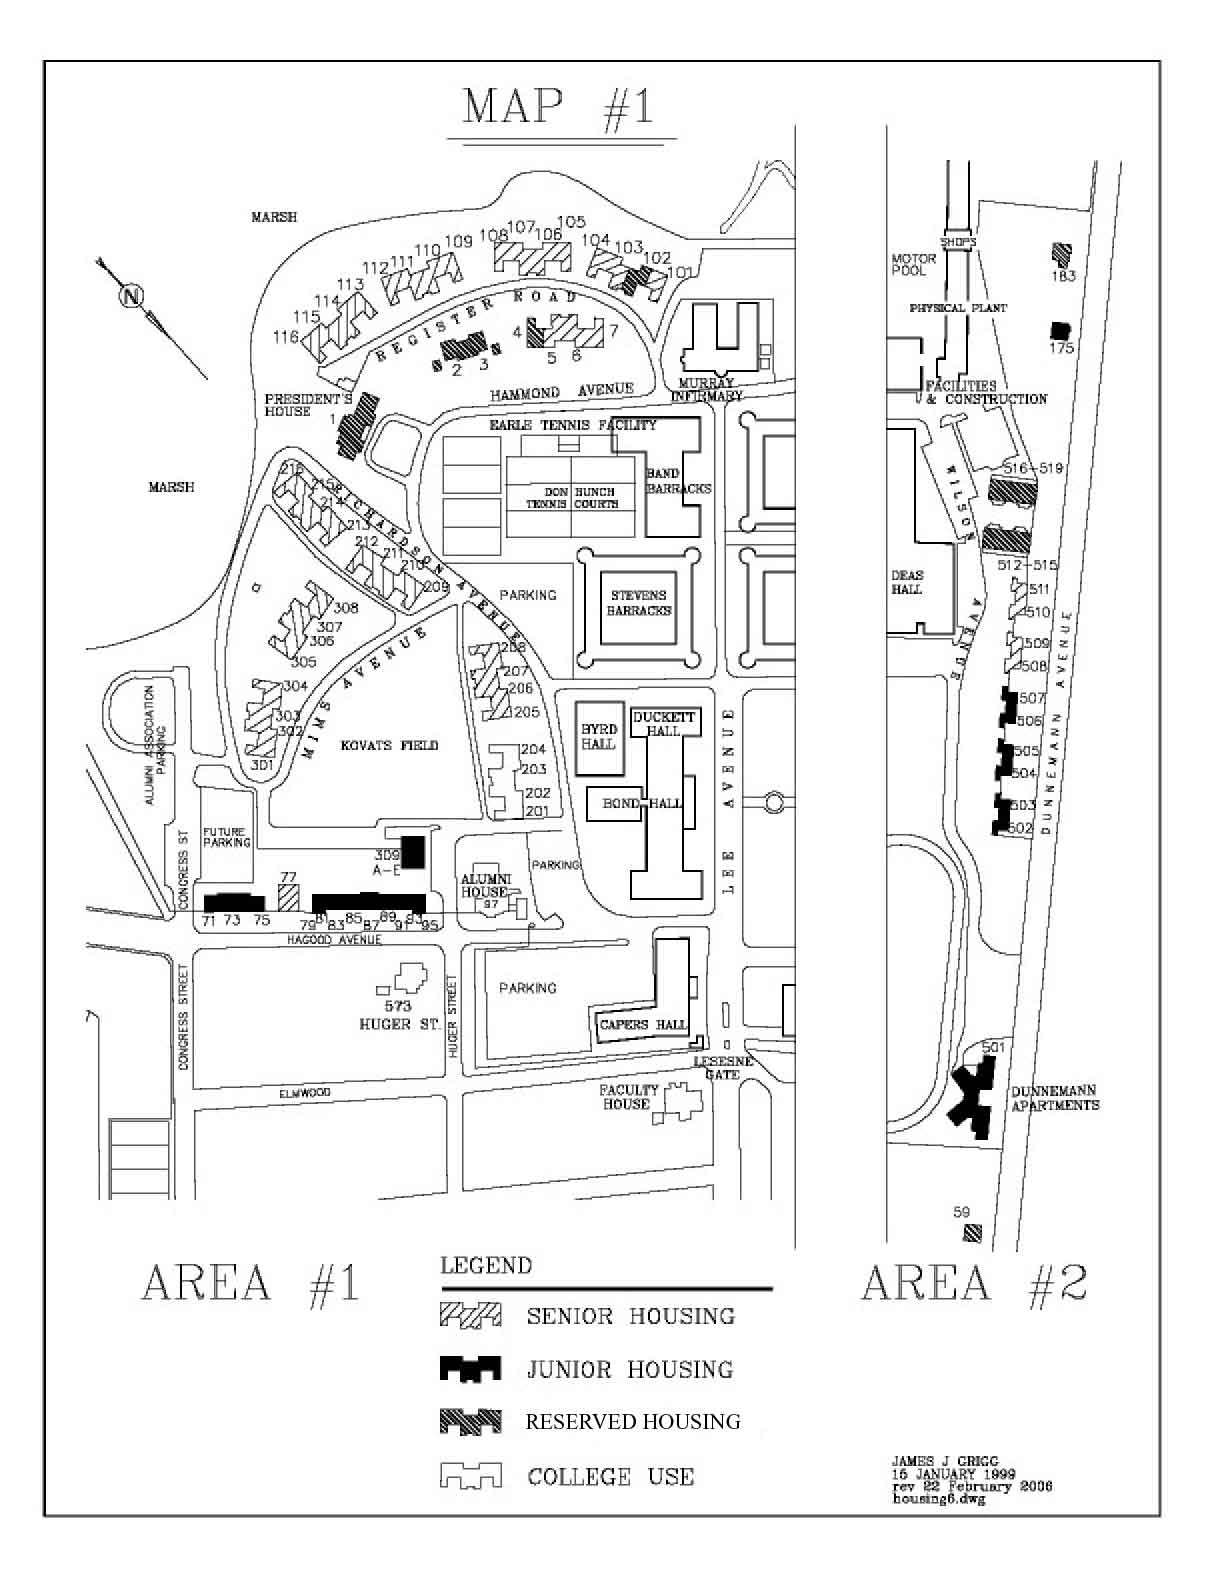 Campus Housing map for The Citadel